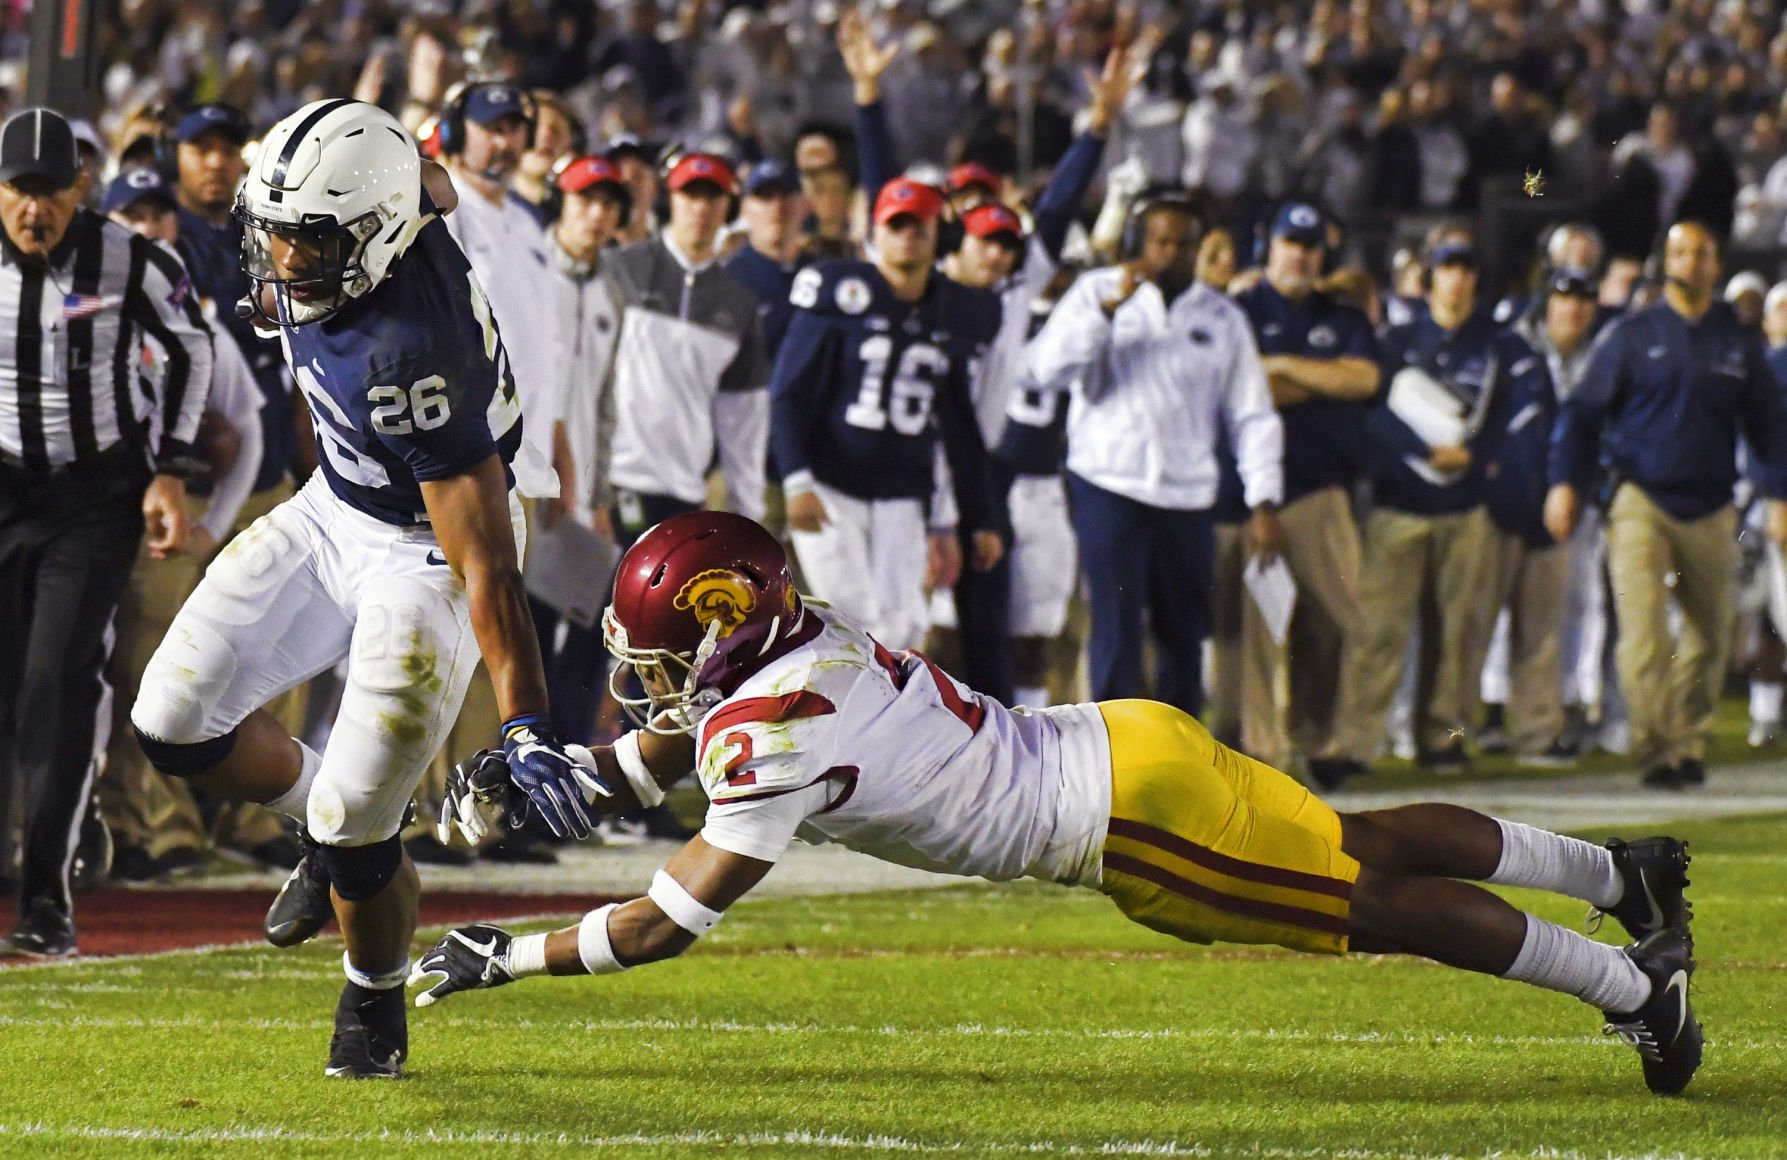 Saquon Barkley leads Big Ten contingent of preseason AP All-Americans